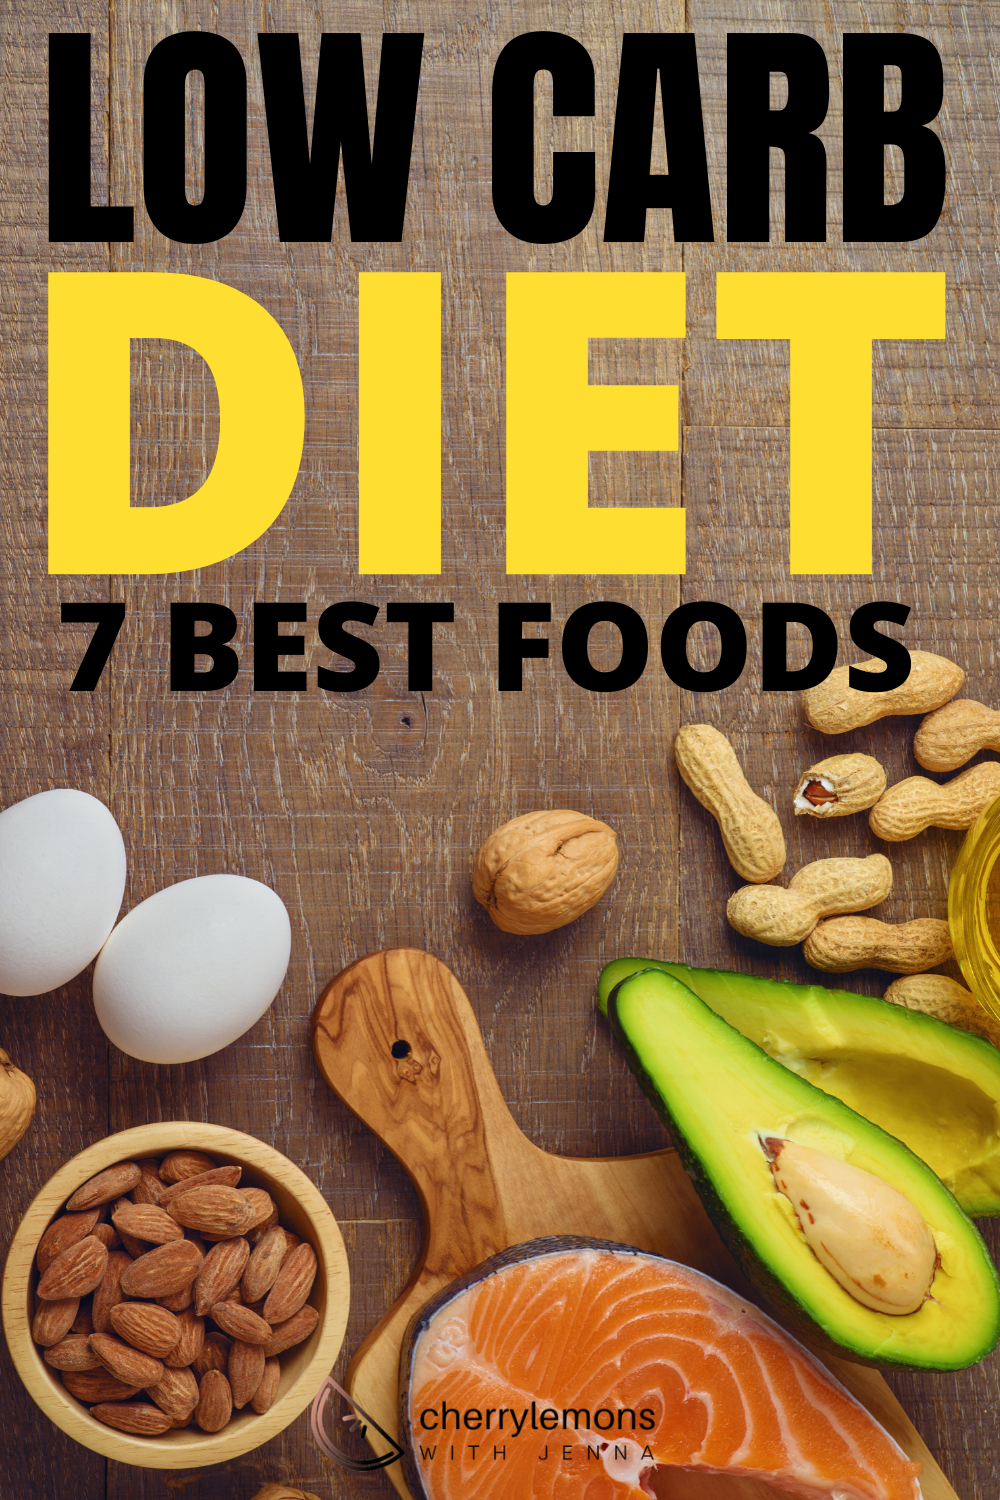 7 Best foods for low carb diets No carb diets, Low